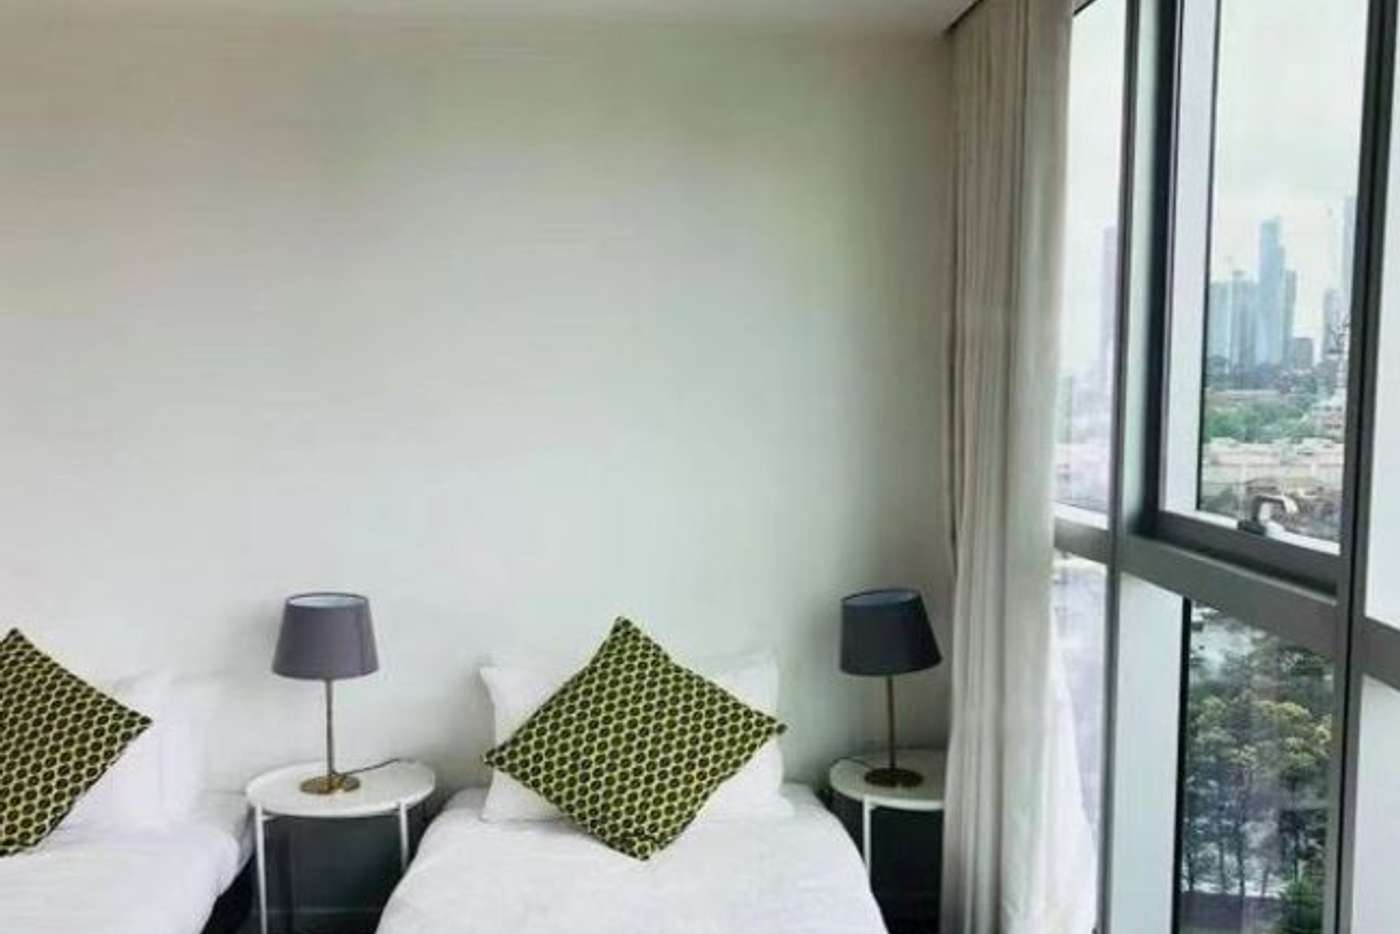 Fifth view of Homely apartment listing, 1705/231 Harbour Esplanade, Docklands VIC 3008